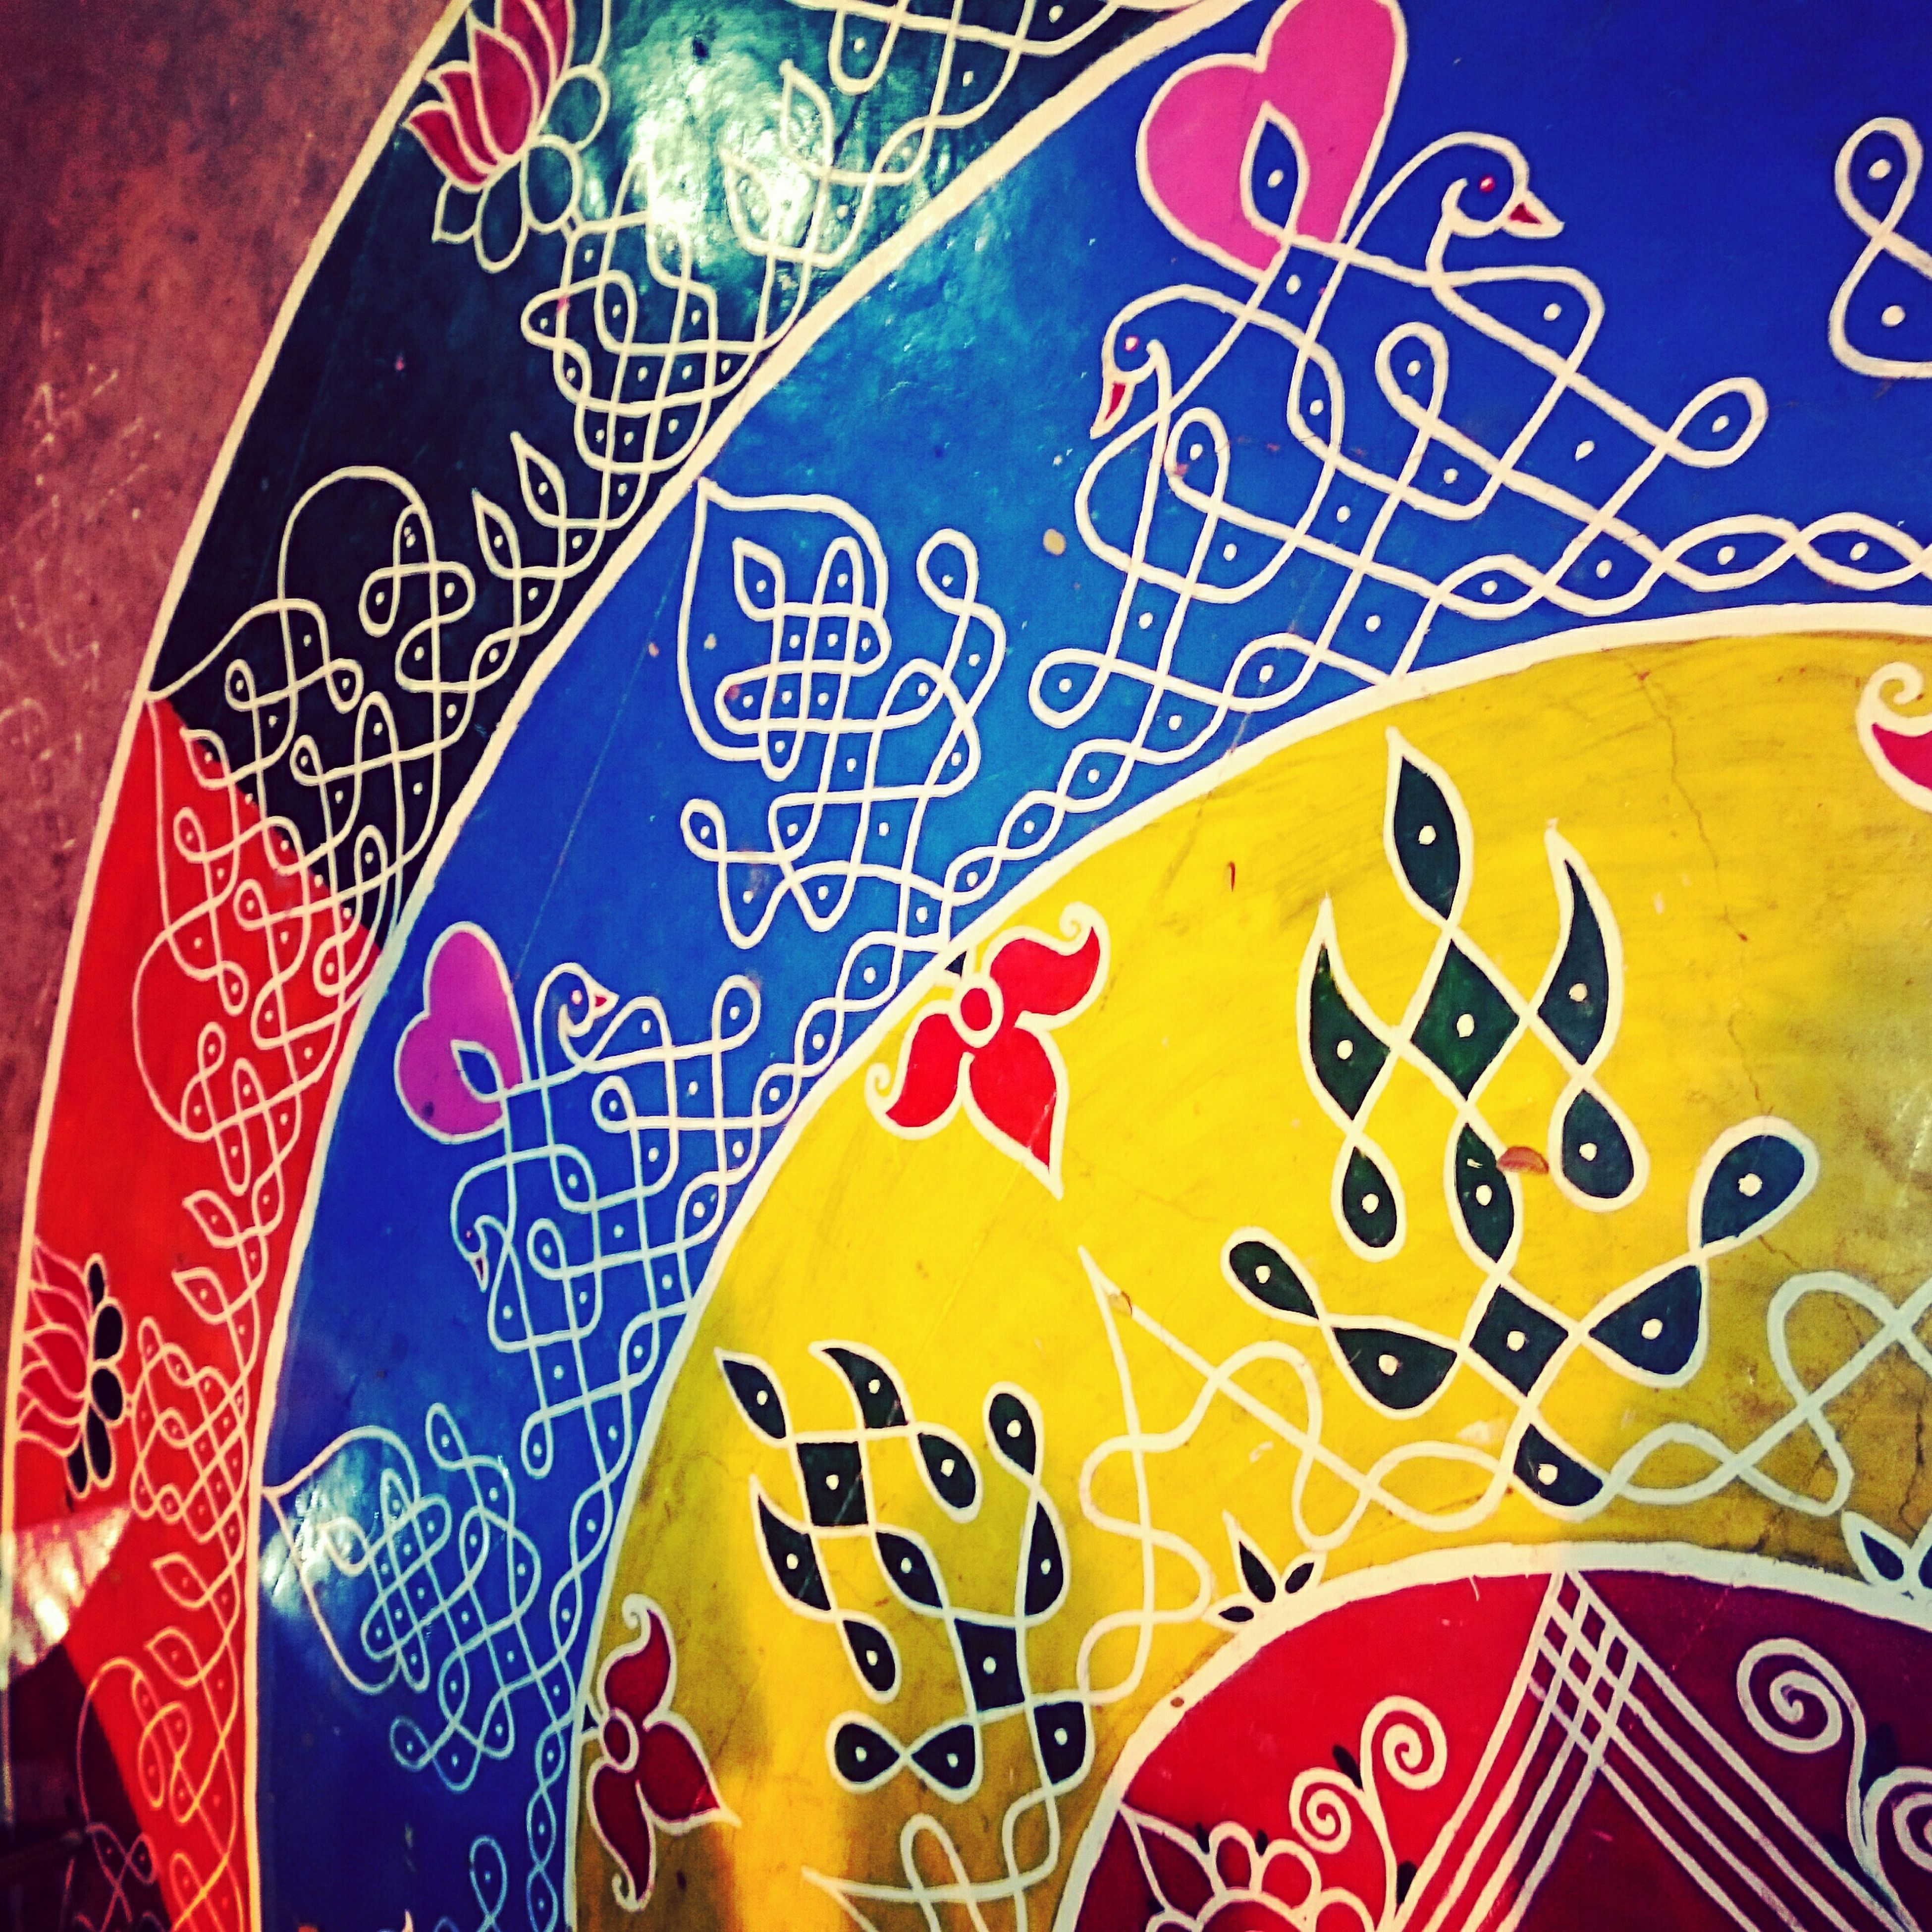 art and craft, creativity, art, text, communication, indoors, western script, multi colored, design, pattern, close-up, circle, graffiti, floral pattern, human representation, wall - building feature, animal representation, shape, non-western script, no people